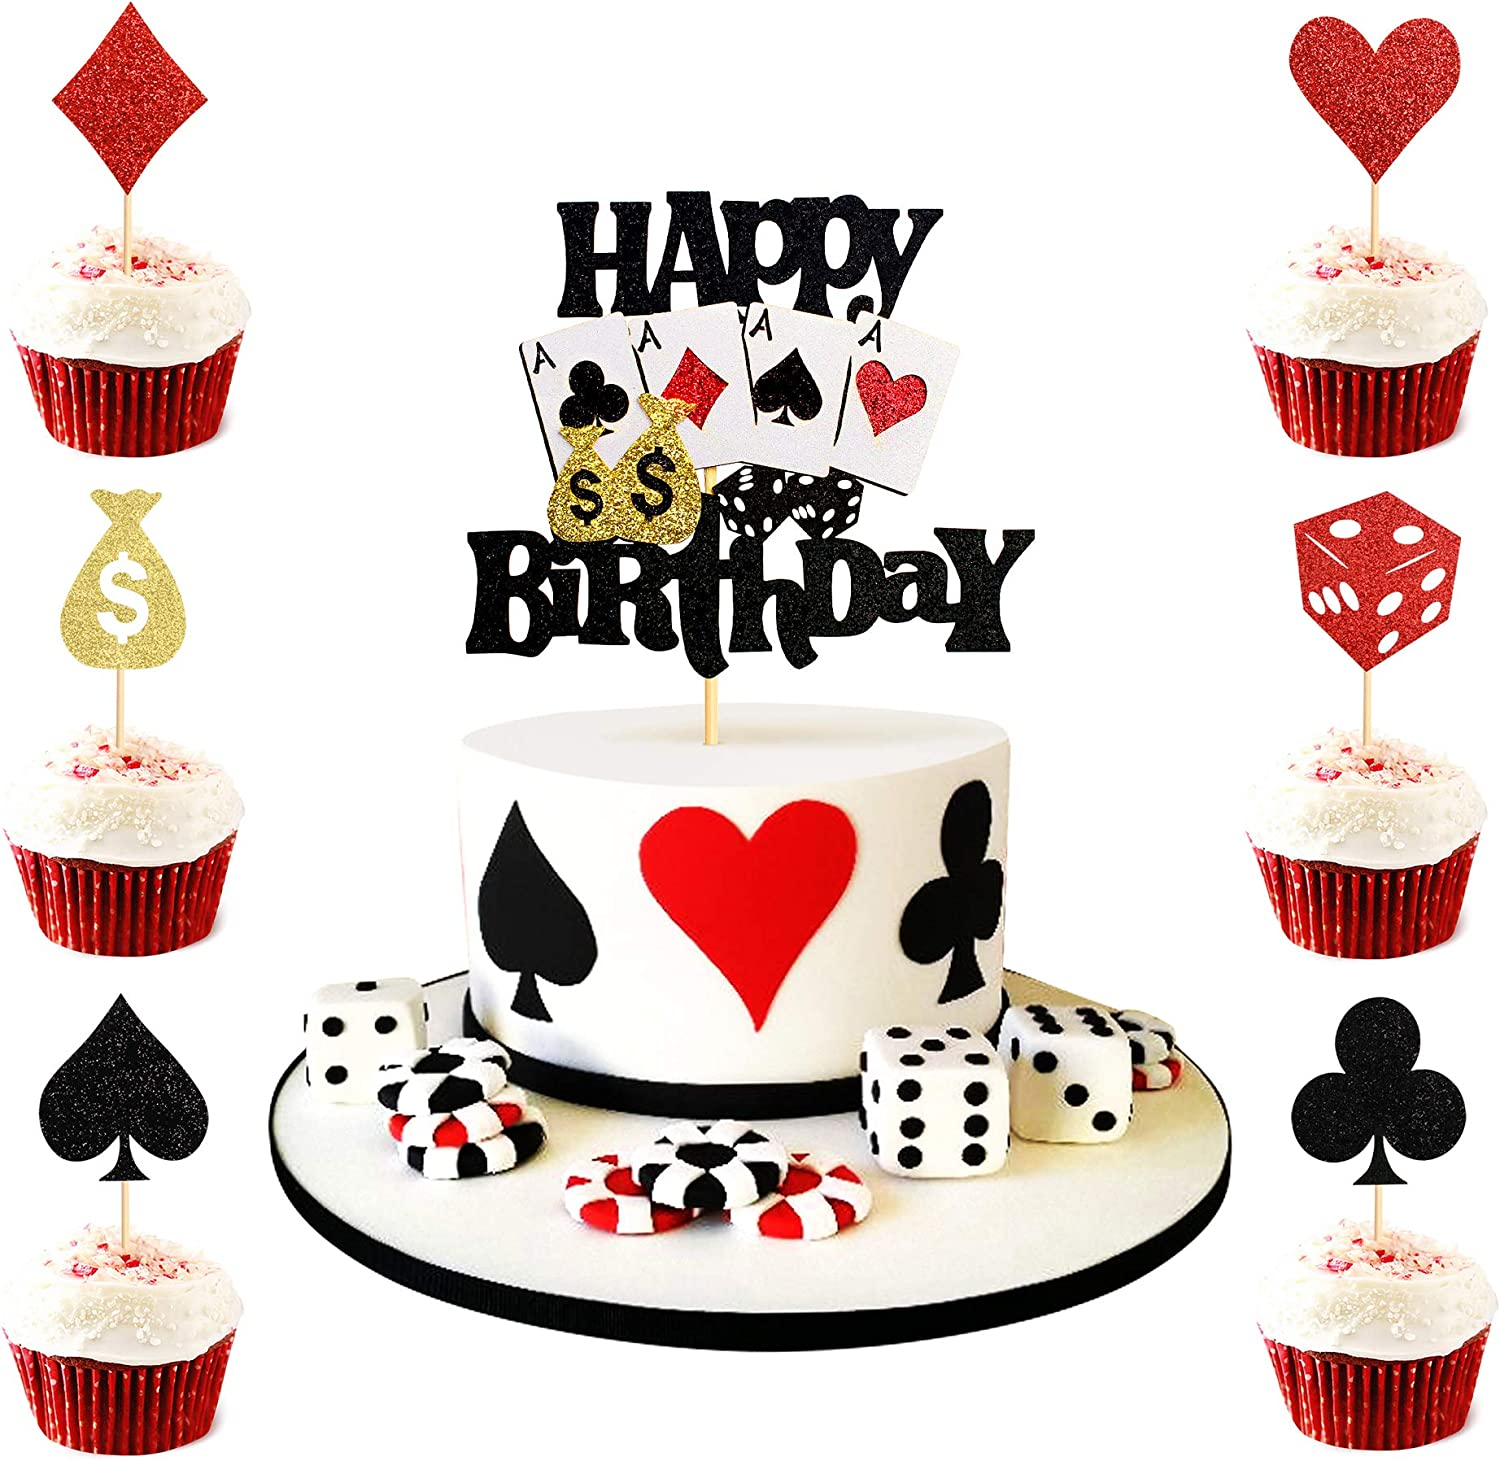 Keaziu 25 Pack Casino Cupcake Topper Poker Heart cupcake Toppers Playing Cards Vegas Theme Cupcake Toppers Decorations Poker Night Party Supplies